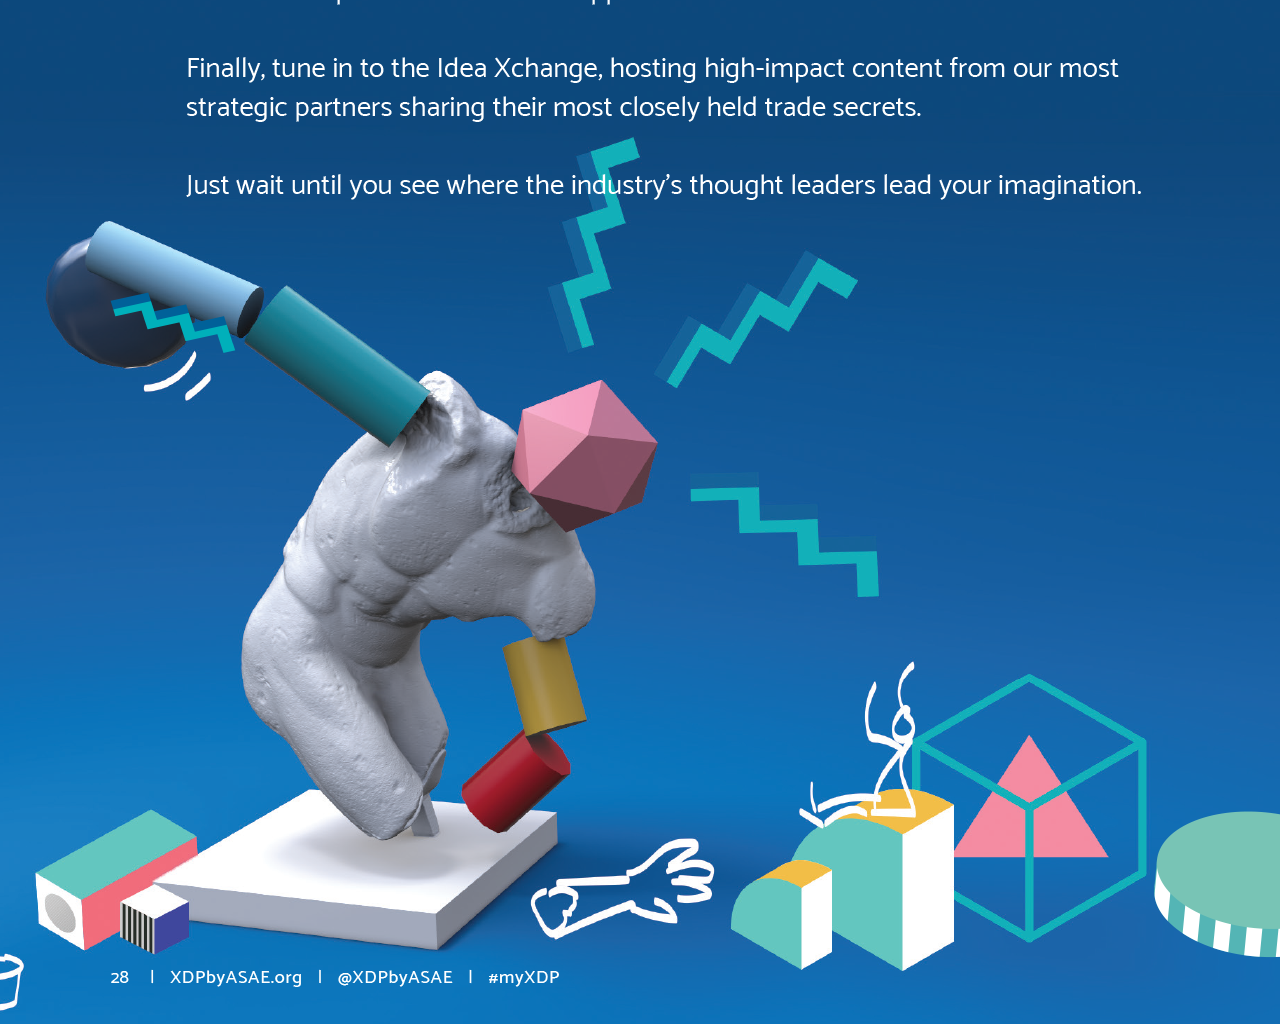 Artwork from XDP 2019 event playbook with a colorful mixture of 3d and 2d shapes